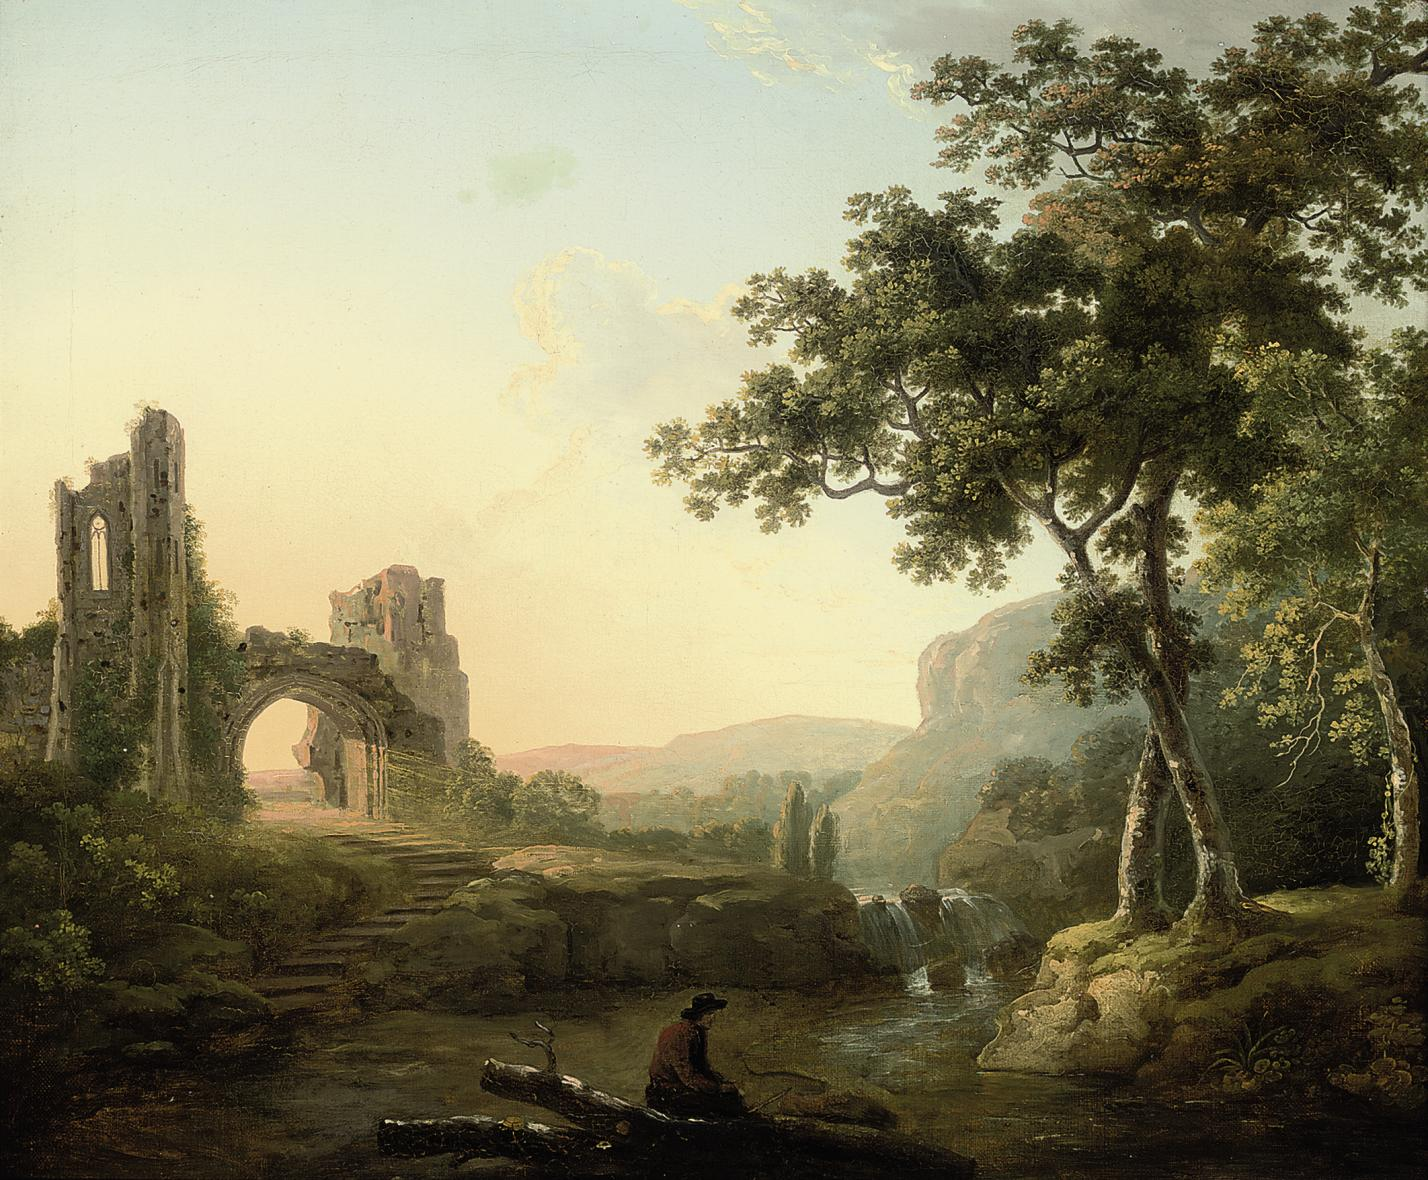 A wooded river landscape with a man and his dog by a waterfall, ruins beyond